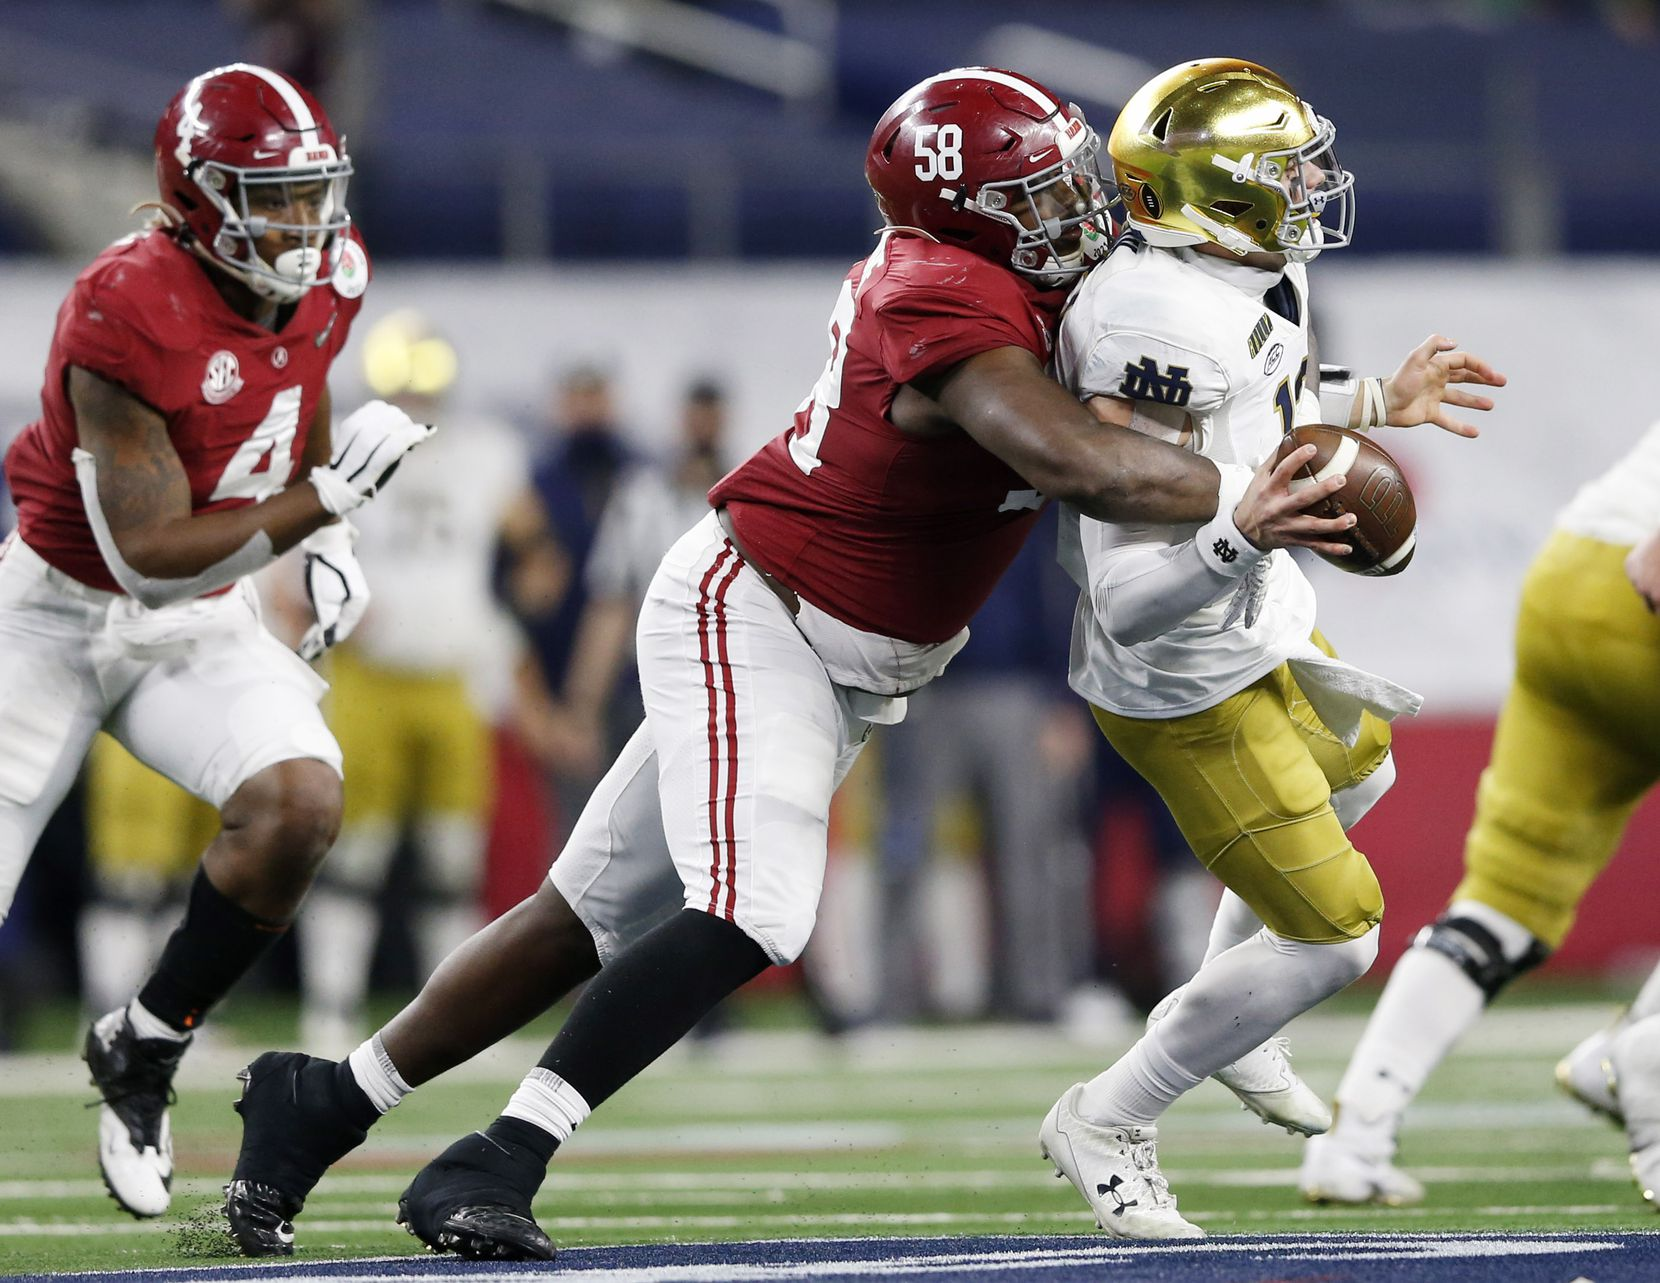 Alabama Crimson Tide defensive lineman Christian Barmore (58) sacks Notre Dame Fighting Irish quarterback Ian Book (12) during the second half of play at the Rose Bowl NCAA college football playoff semifinal at AT&T Stadium on Friday, December 30, 2020 in Arlington, Texas. Alabama Crimson Tide defeated Notre Dame Fighting Irish 31-14. (Vernon Bryant/The Dallas Morning News)